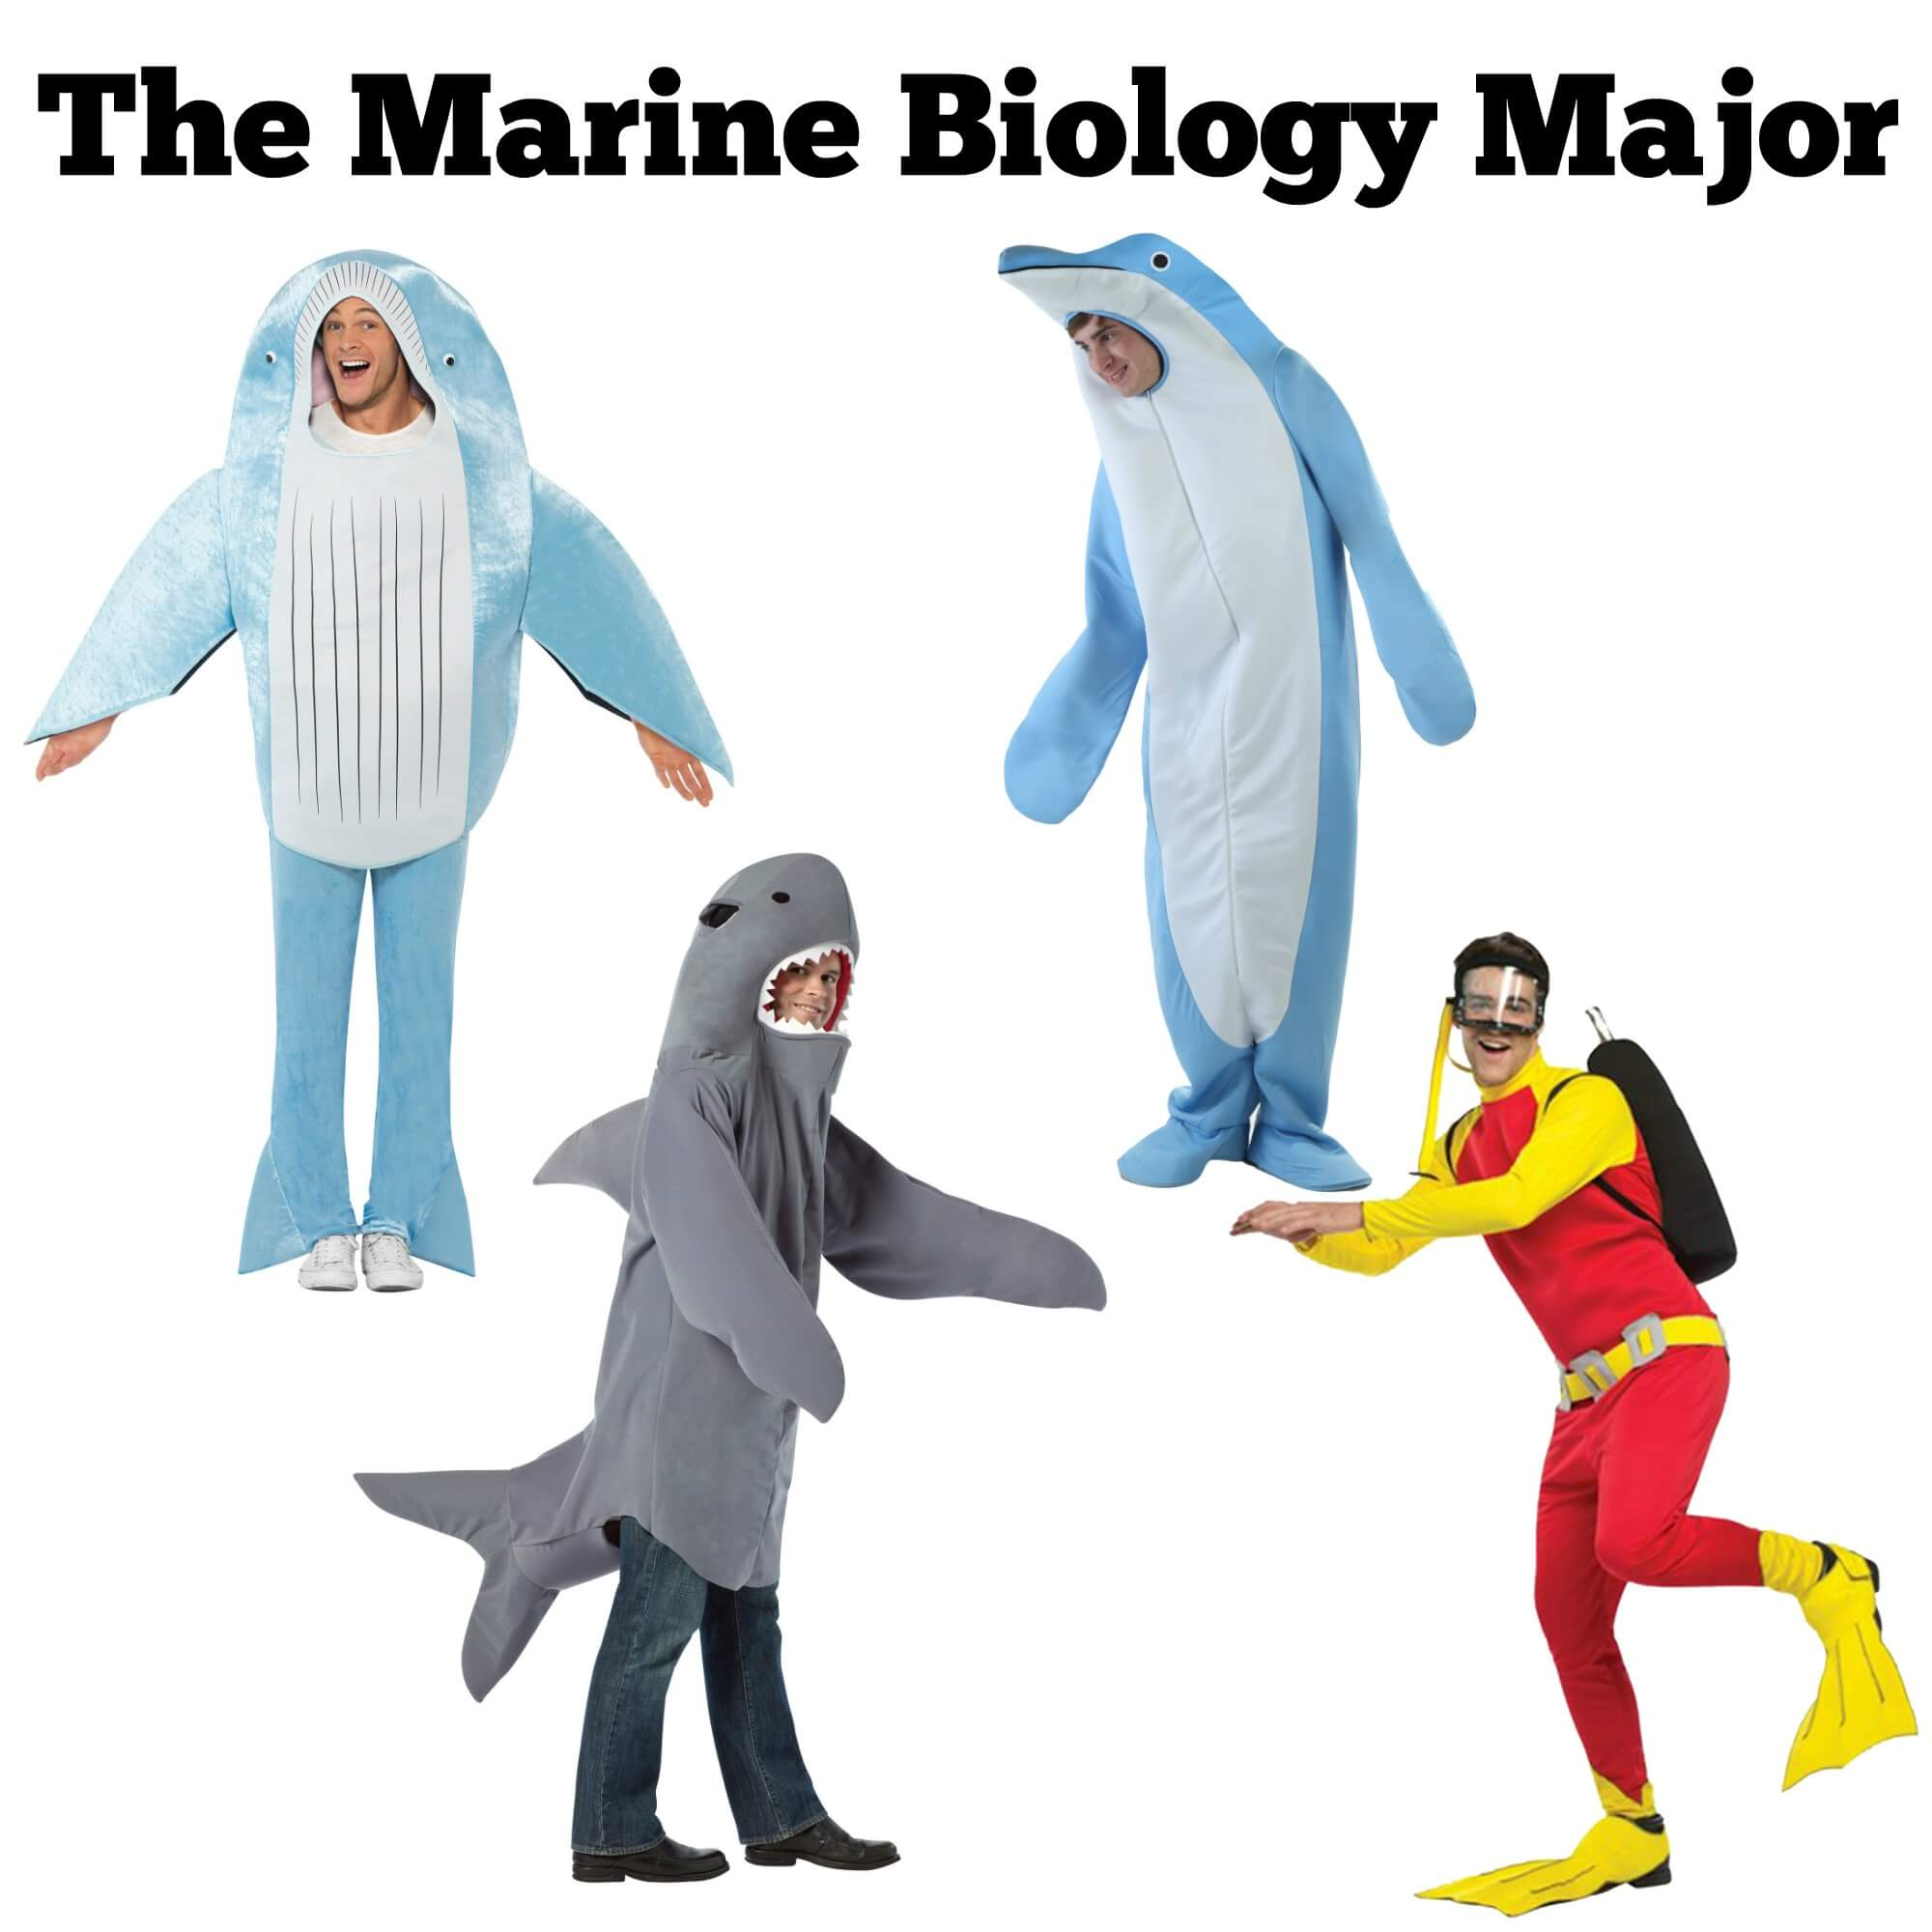 Halloween costume ideas for the Marine Biology major